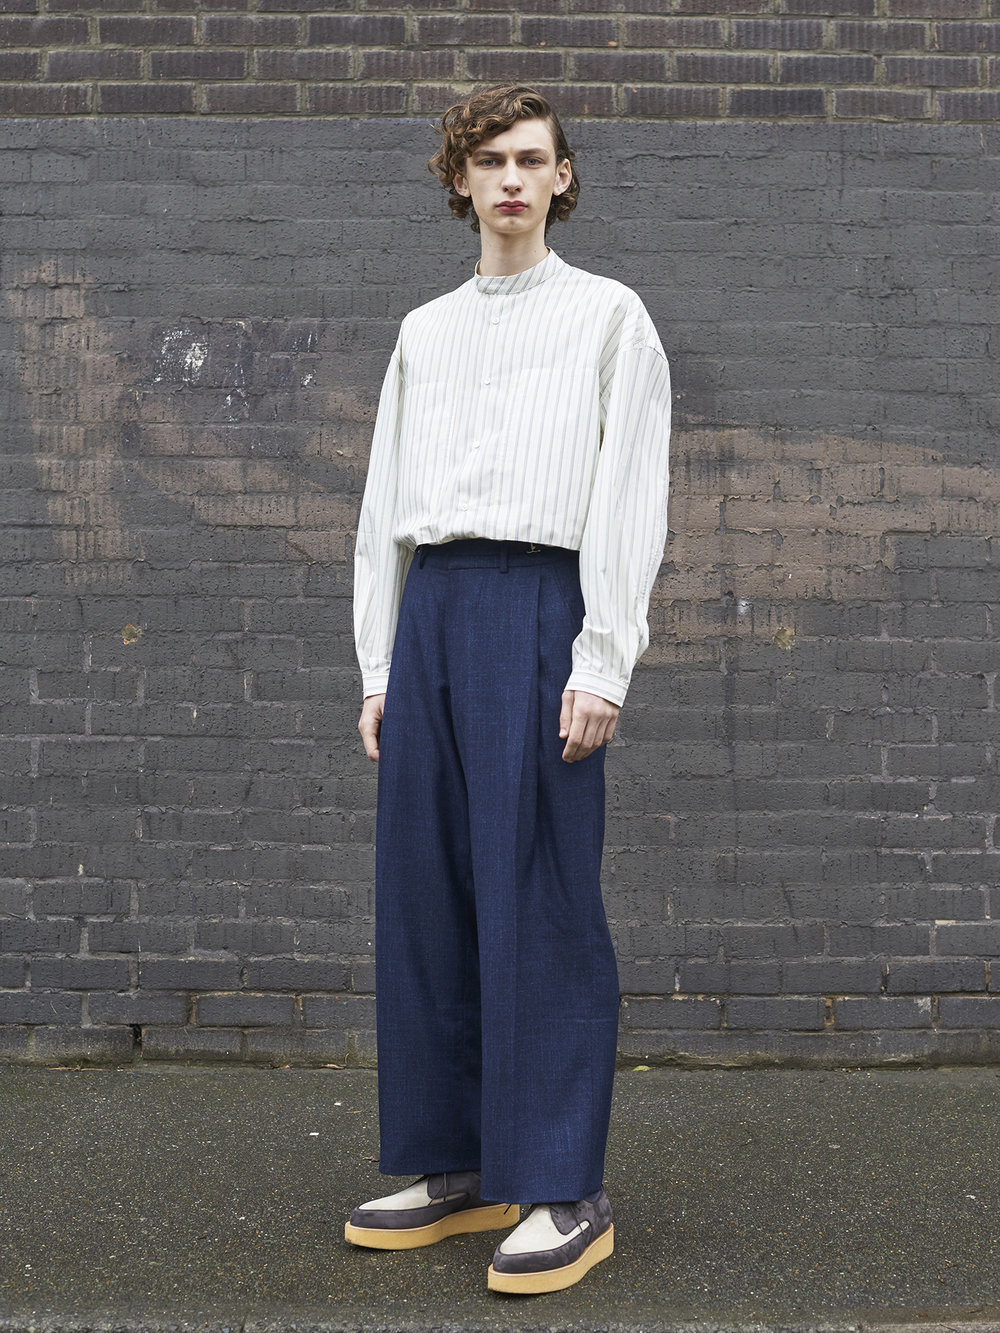 E. Tautz AW18 Collection - Look 9.jpg